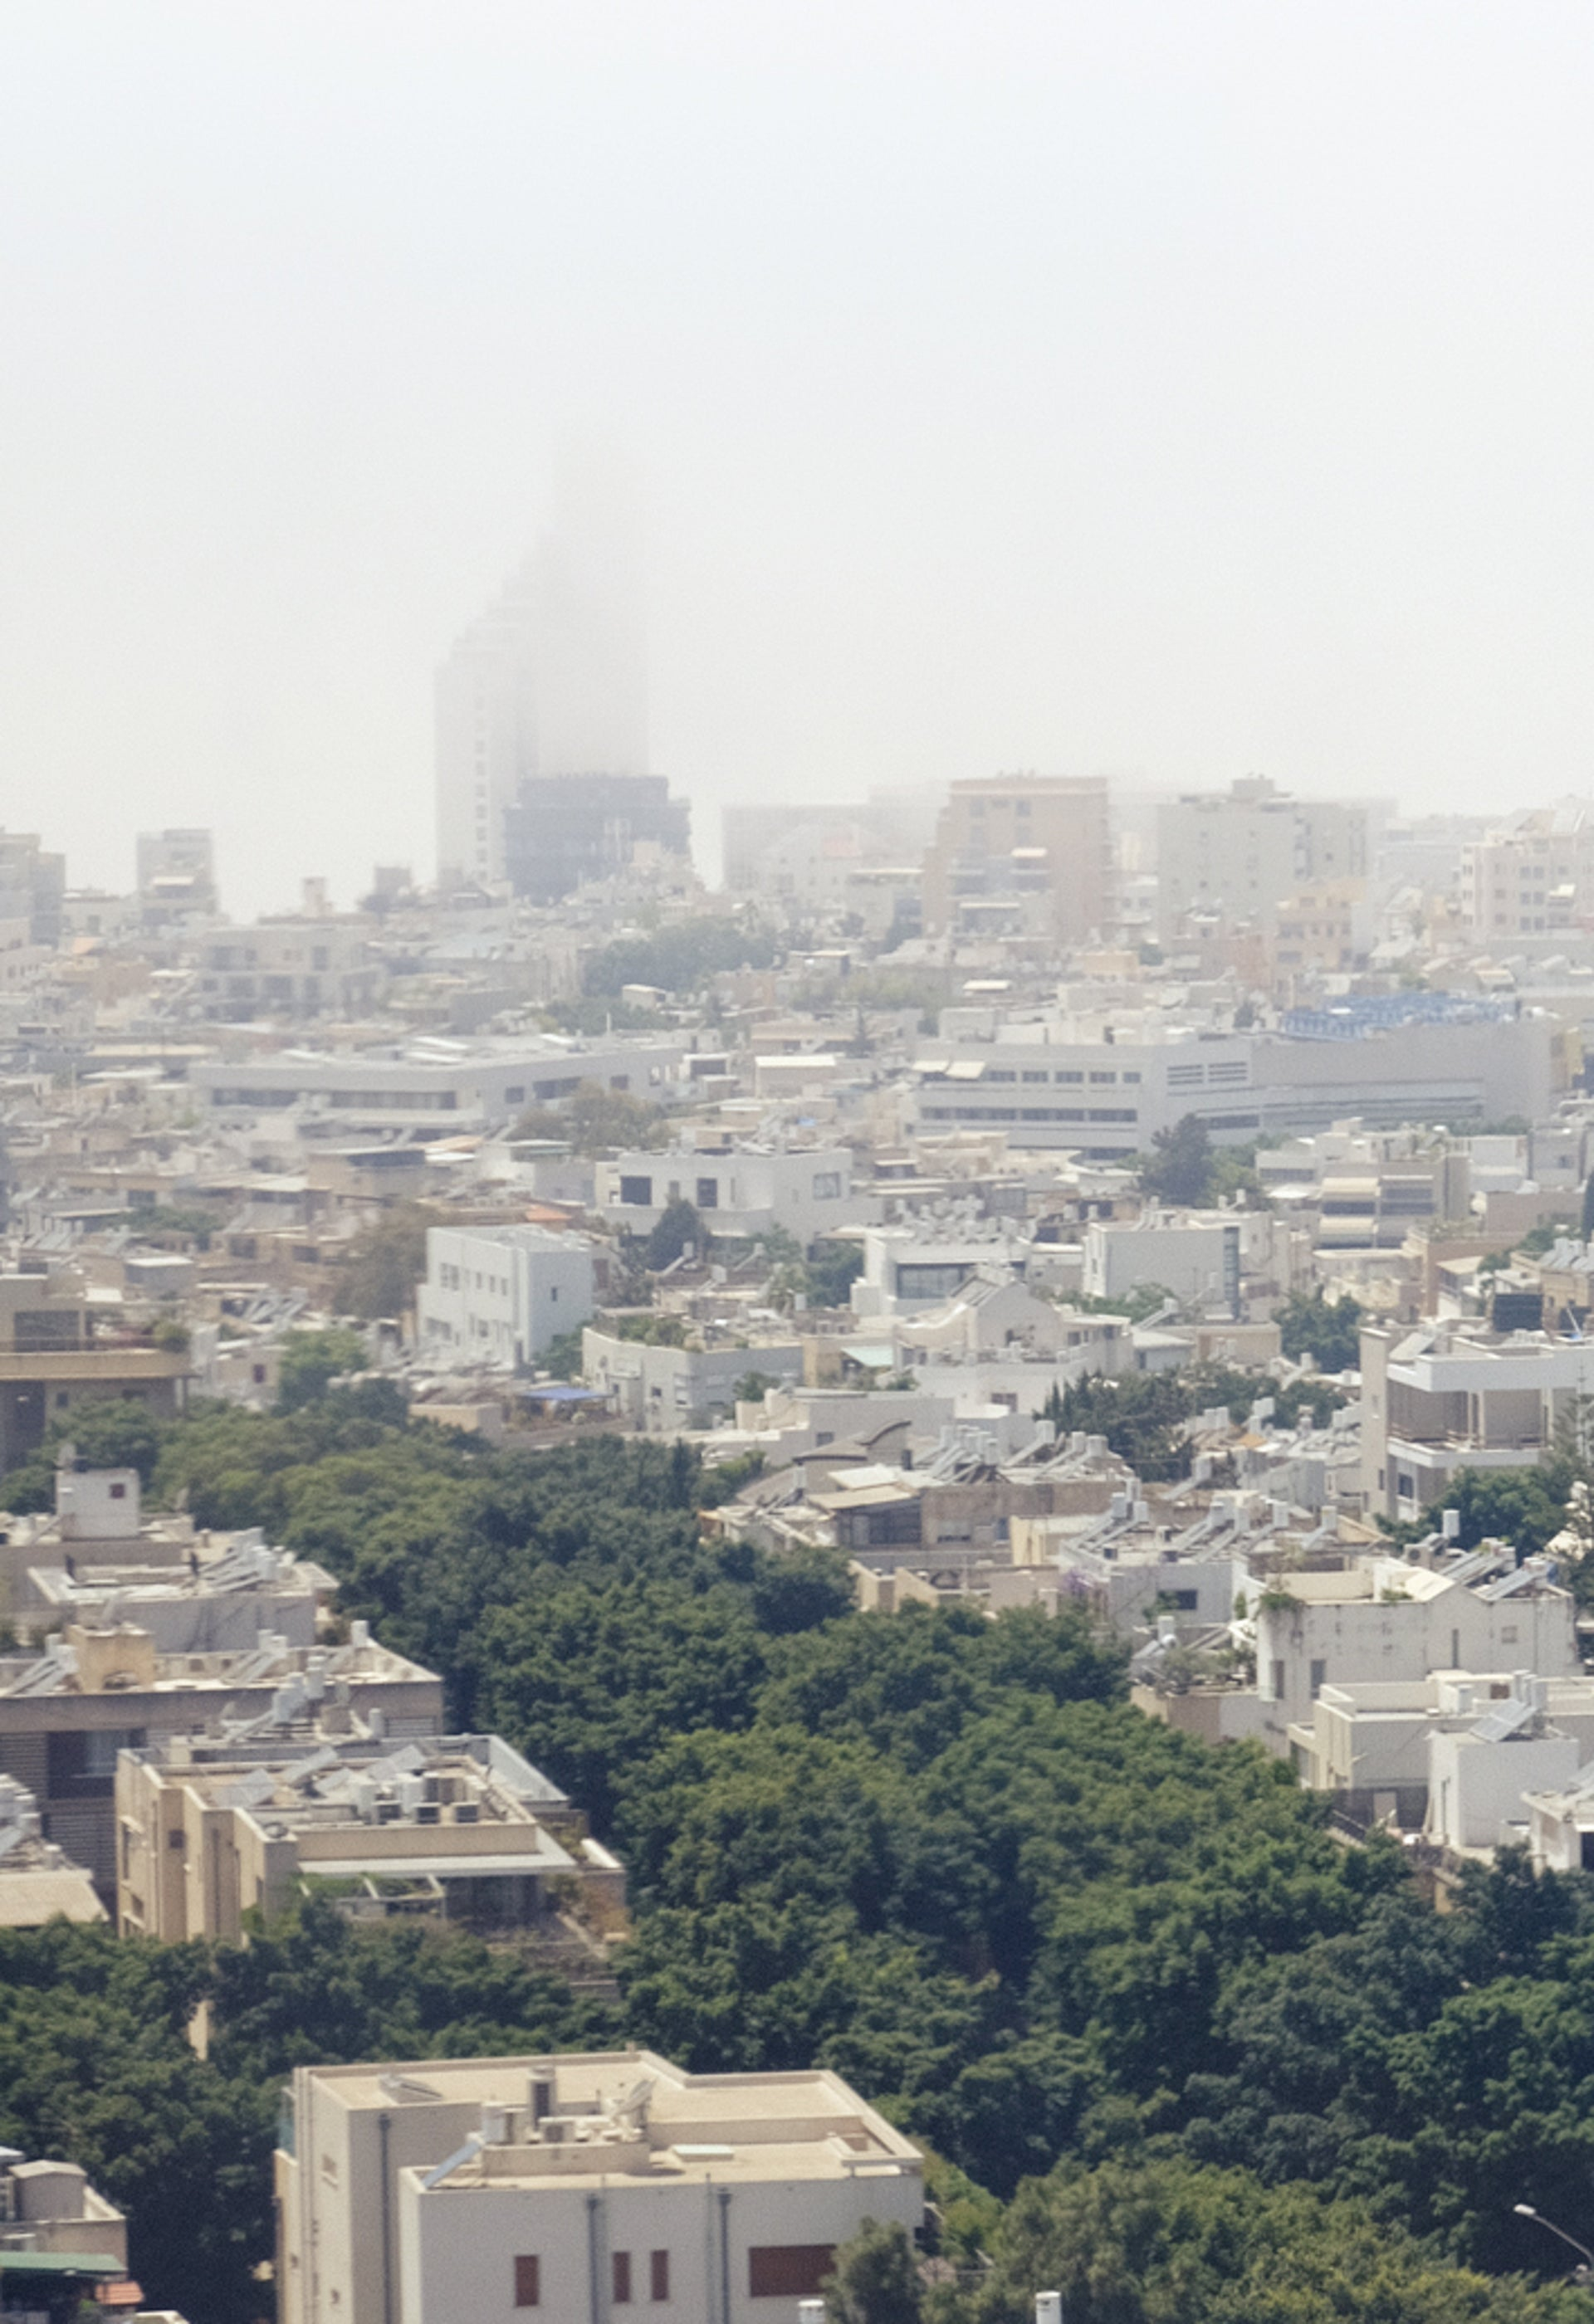 Tel Aviv on Wednesday. A foggy coast.